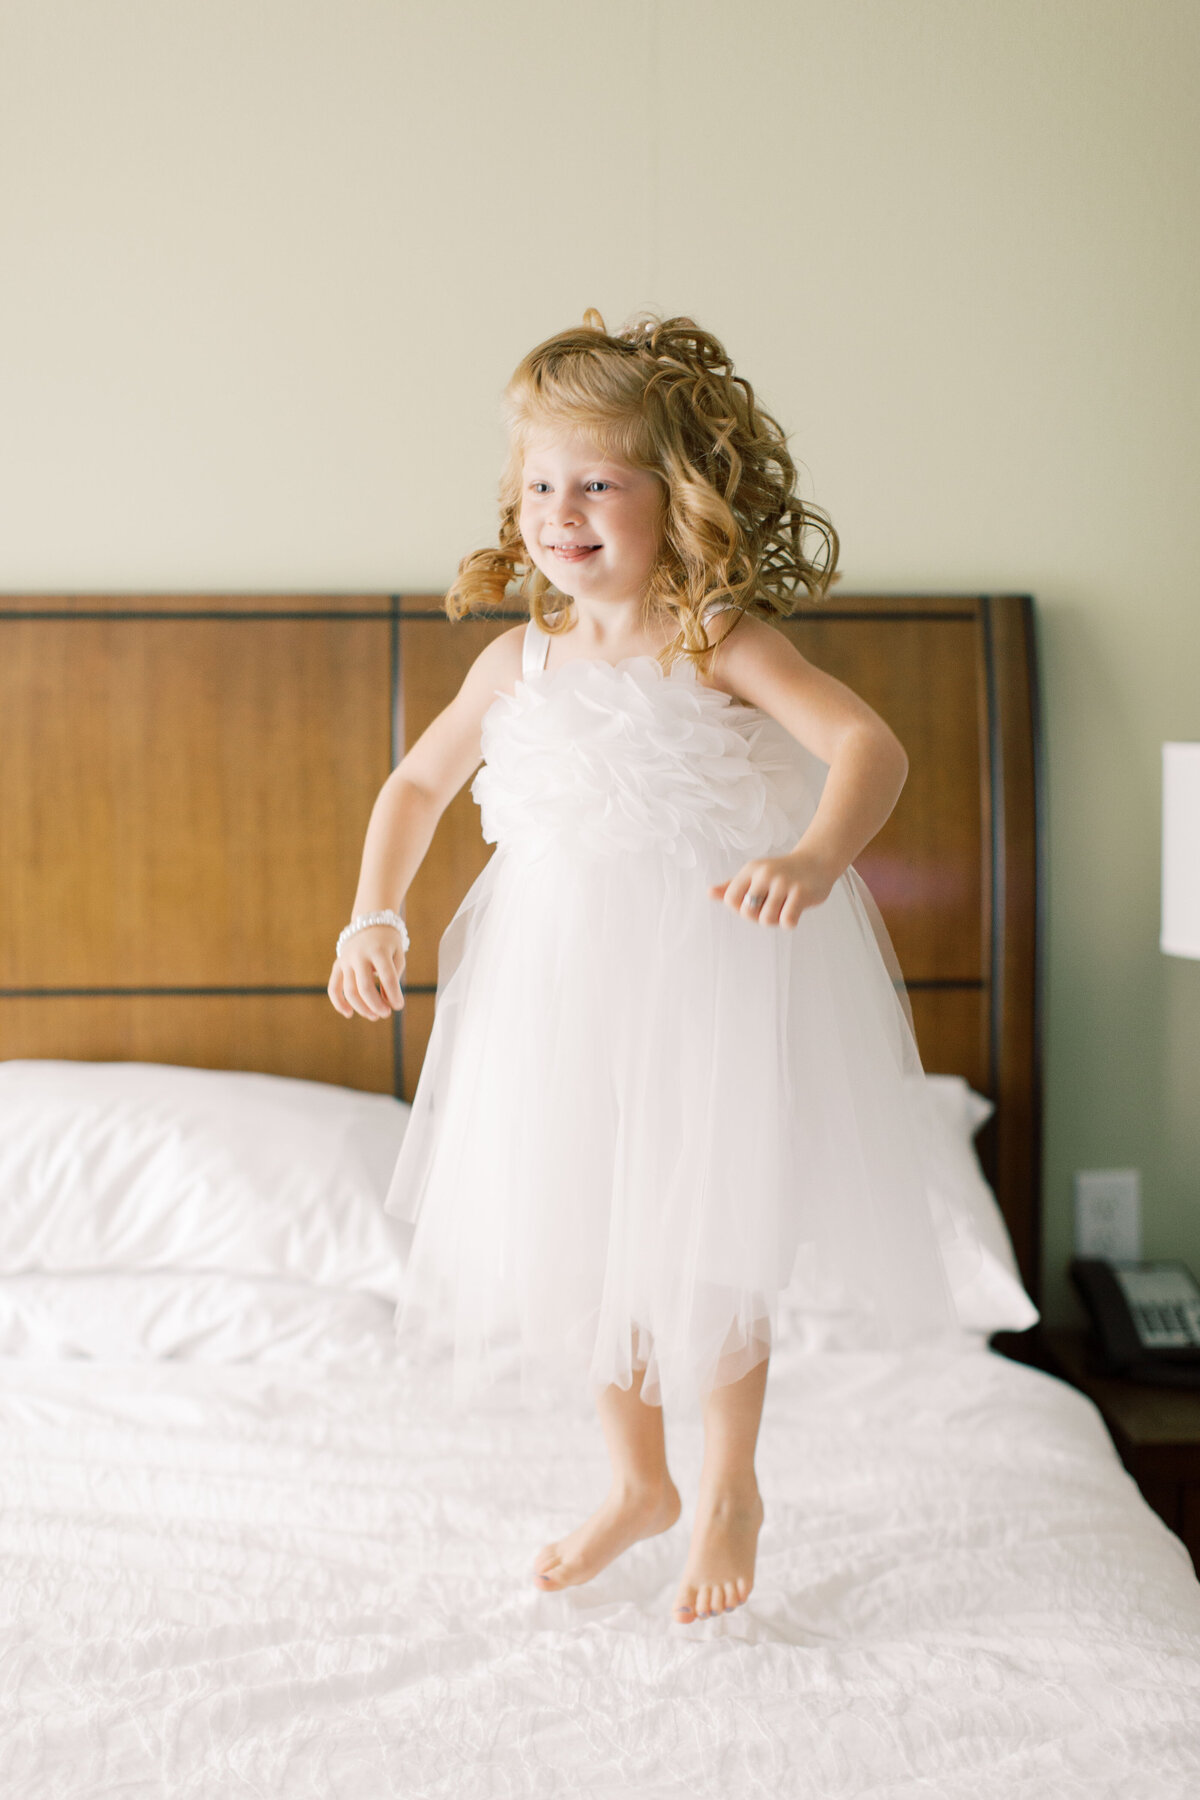 Melton_Wedding__Middleton_Place_Plantation_Charleston_South_Carolina_Jacksonville_Florida_Devon_Donnahoo_Photography__0098